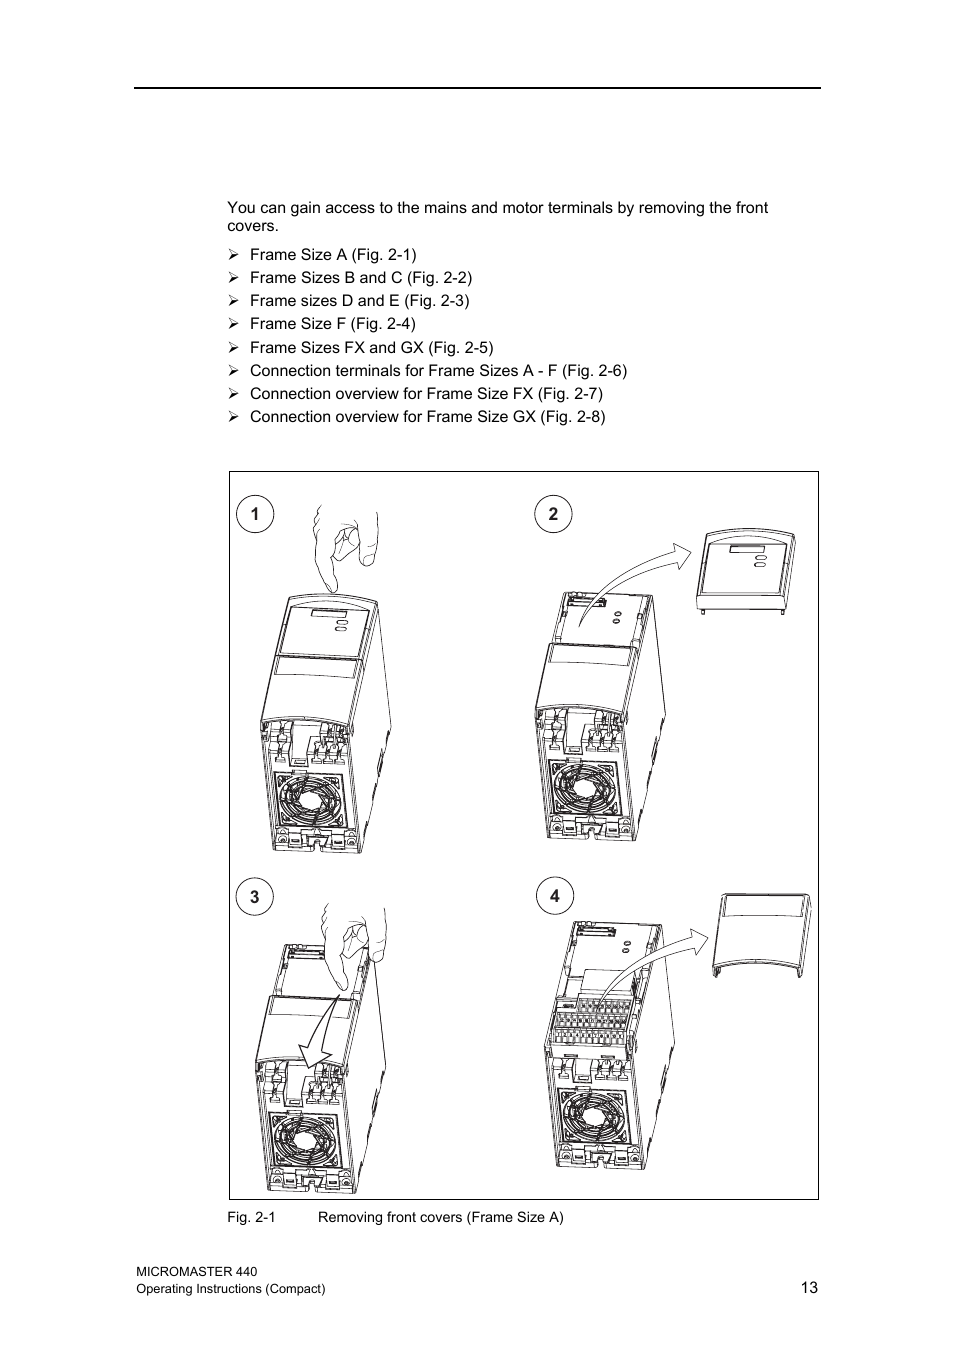 Profinet Rj45 Connector Wiring Diagram Diagrams Cat6 Female Opto 22 Cat 6 Pinout